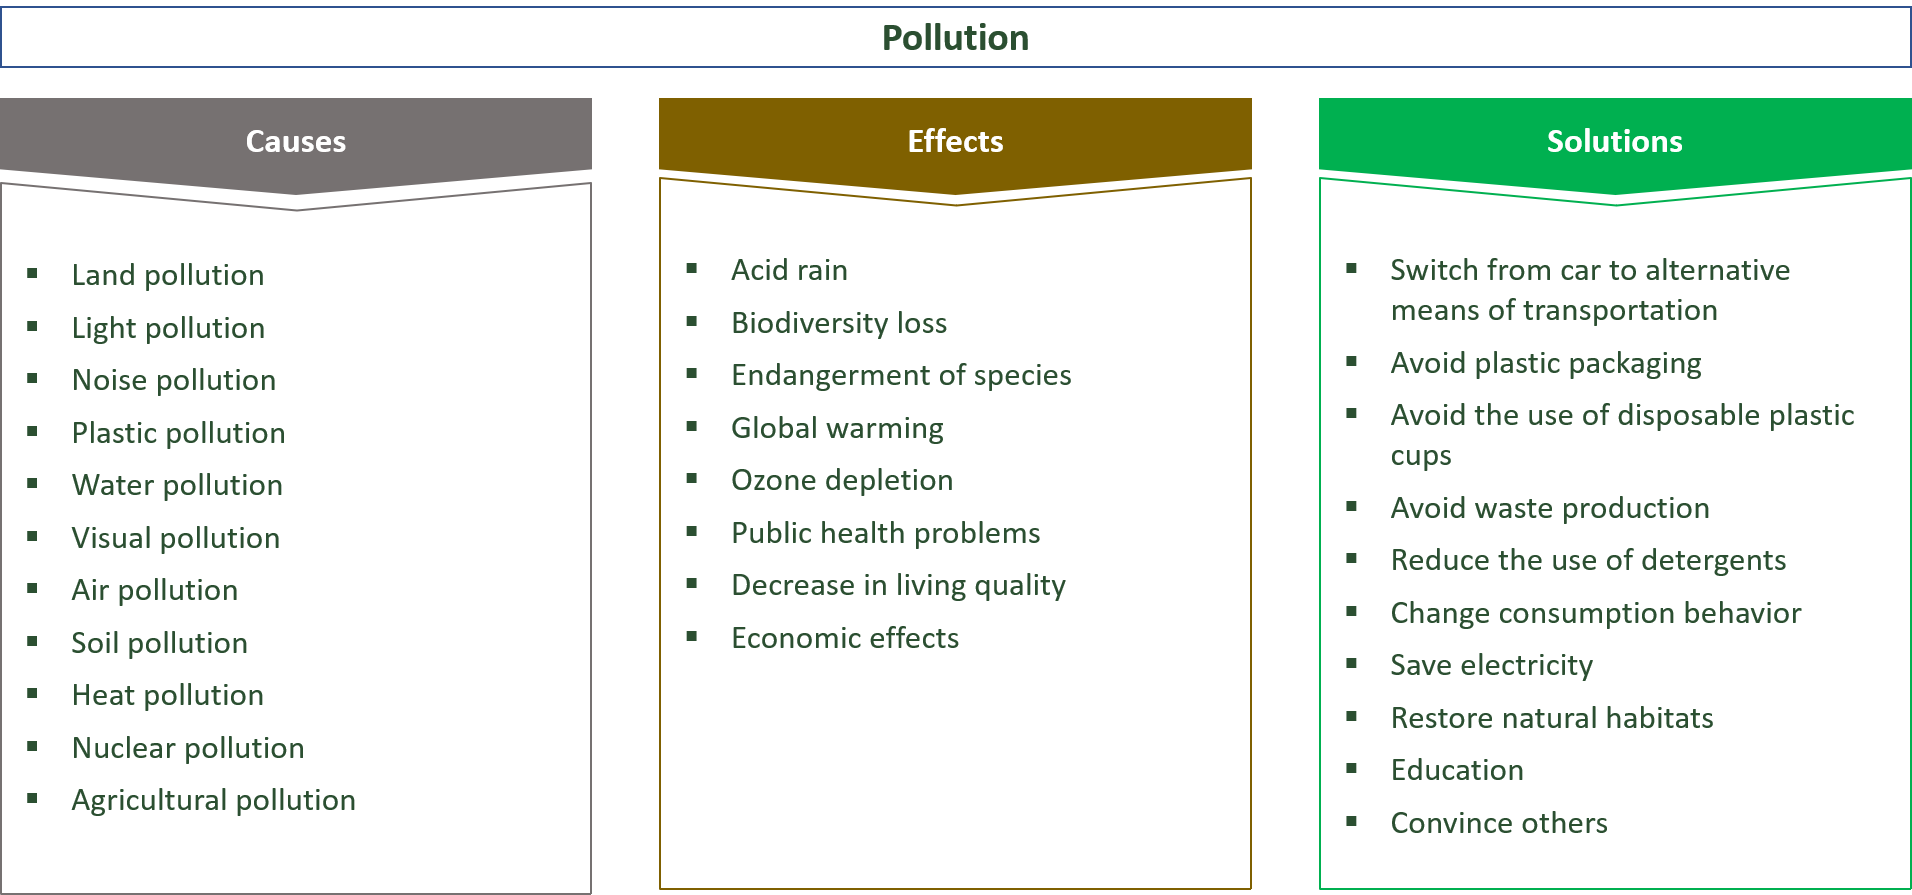 causes, effects & solutions to pollution